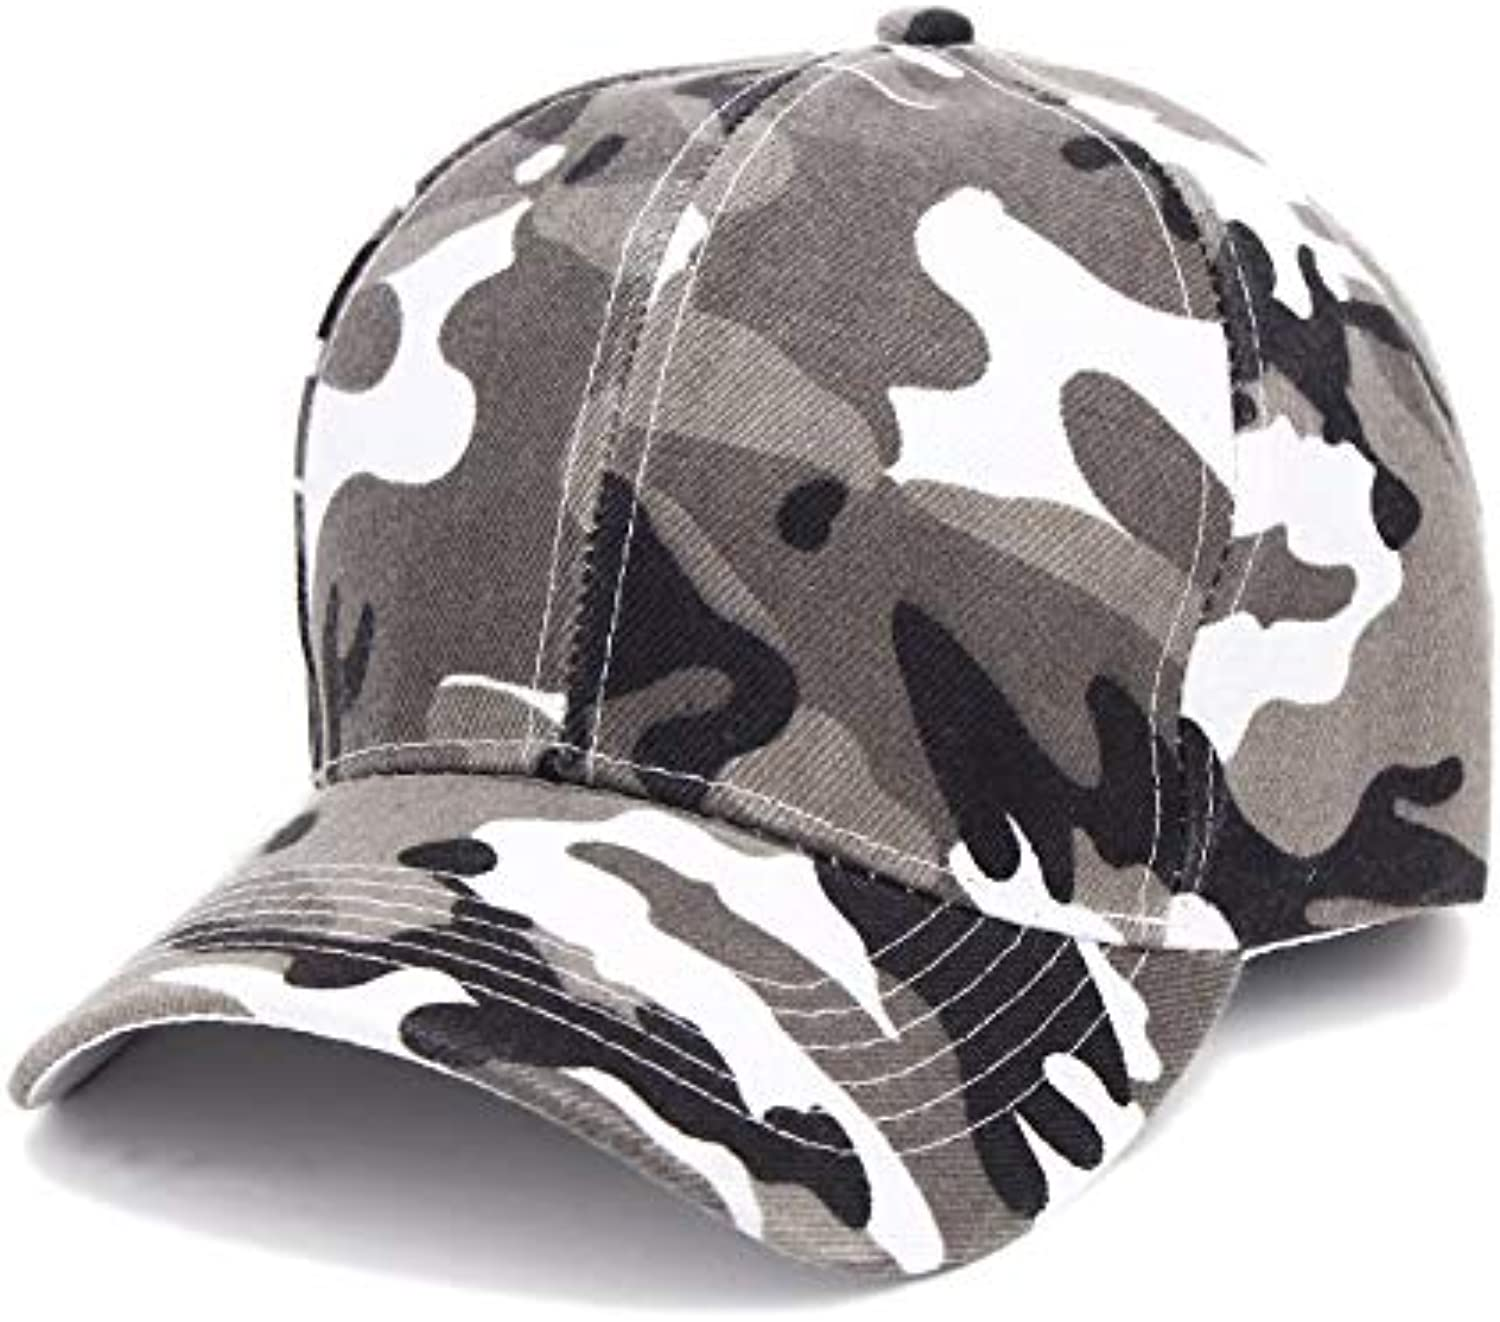 Chlally Casual Cotton Neutral Camouflage hat Fashion Male and Female Baseball Cap Hip hop hat Adjustable Sun hat